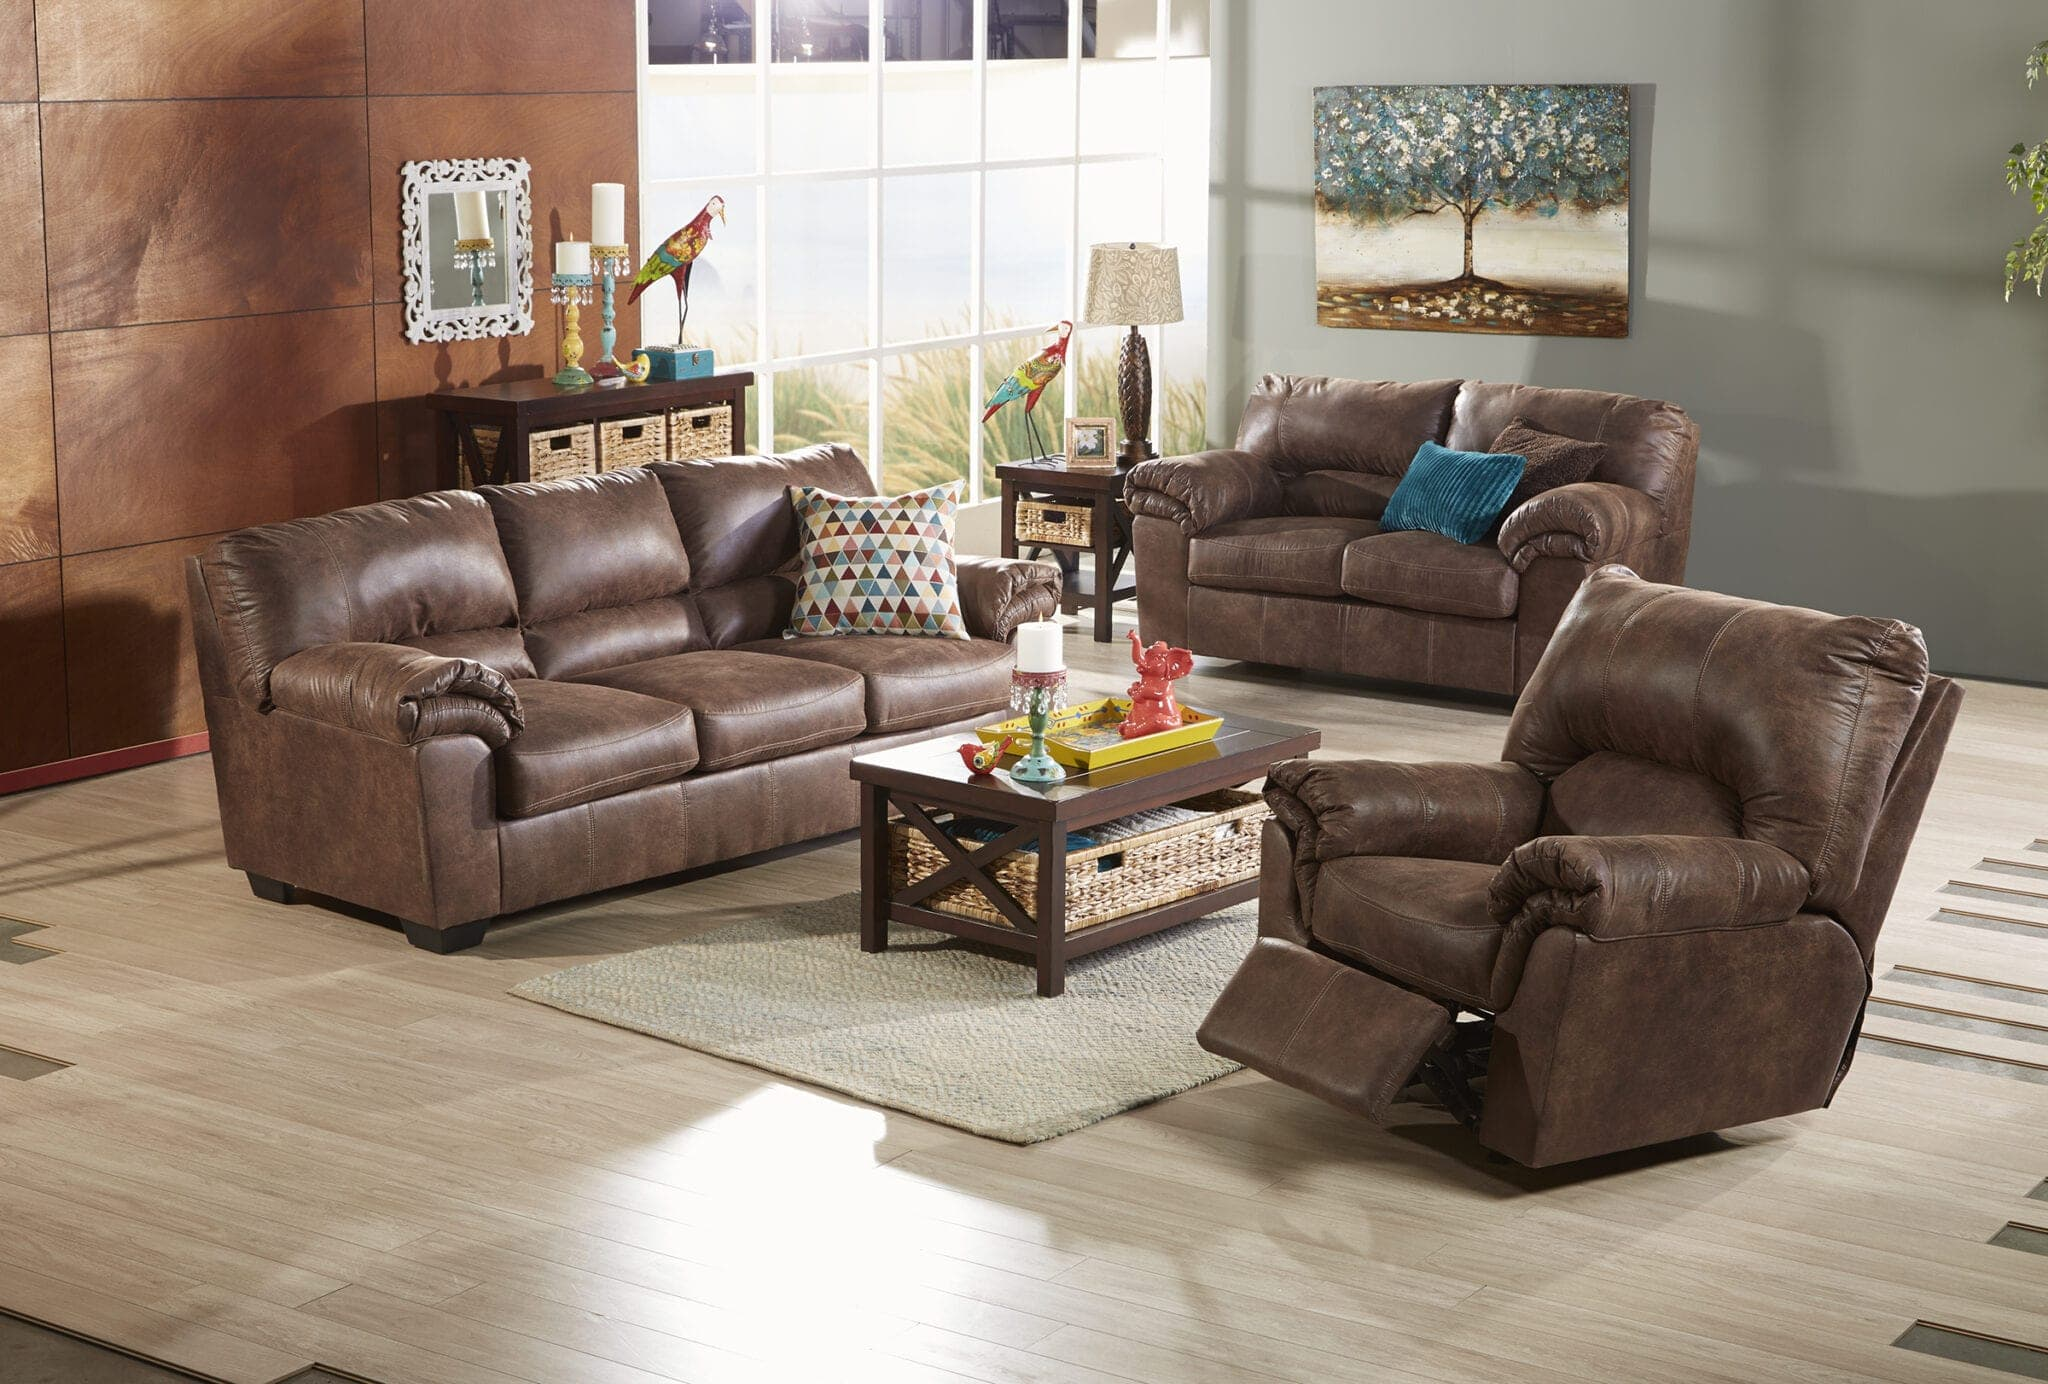 Fred Meyer Chairs Fred Meyer Truckload Furniture Event Couches Under 300